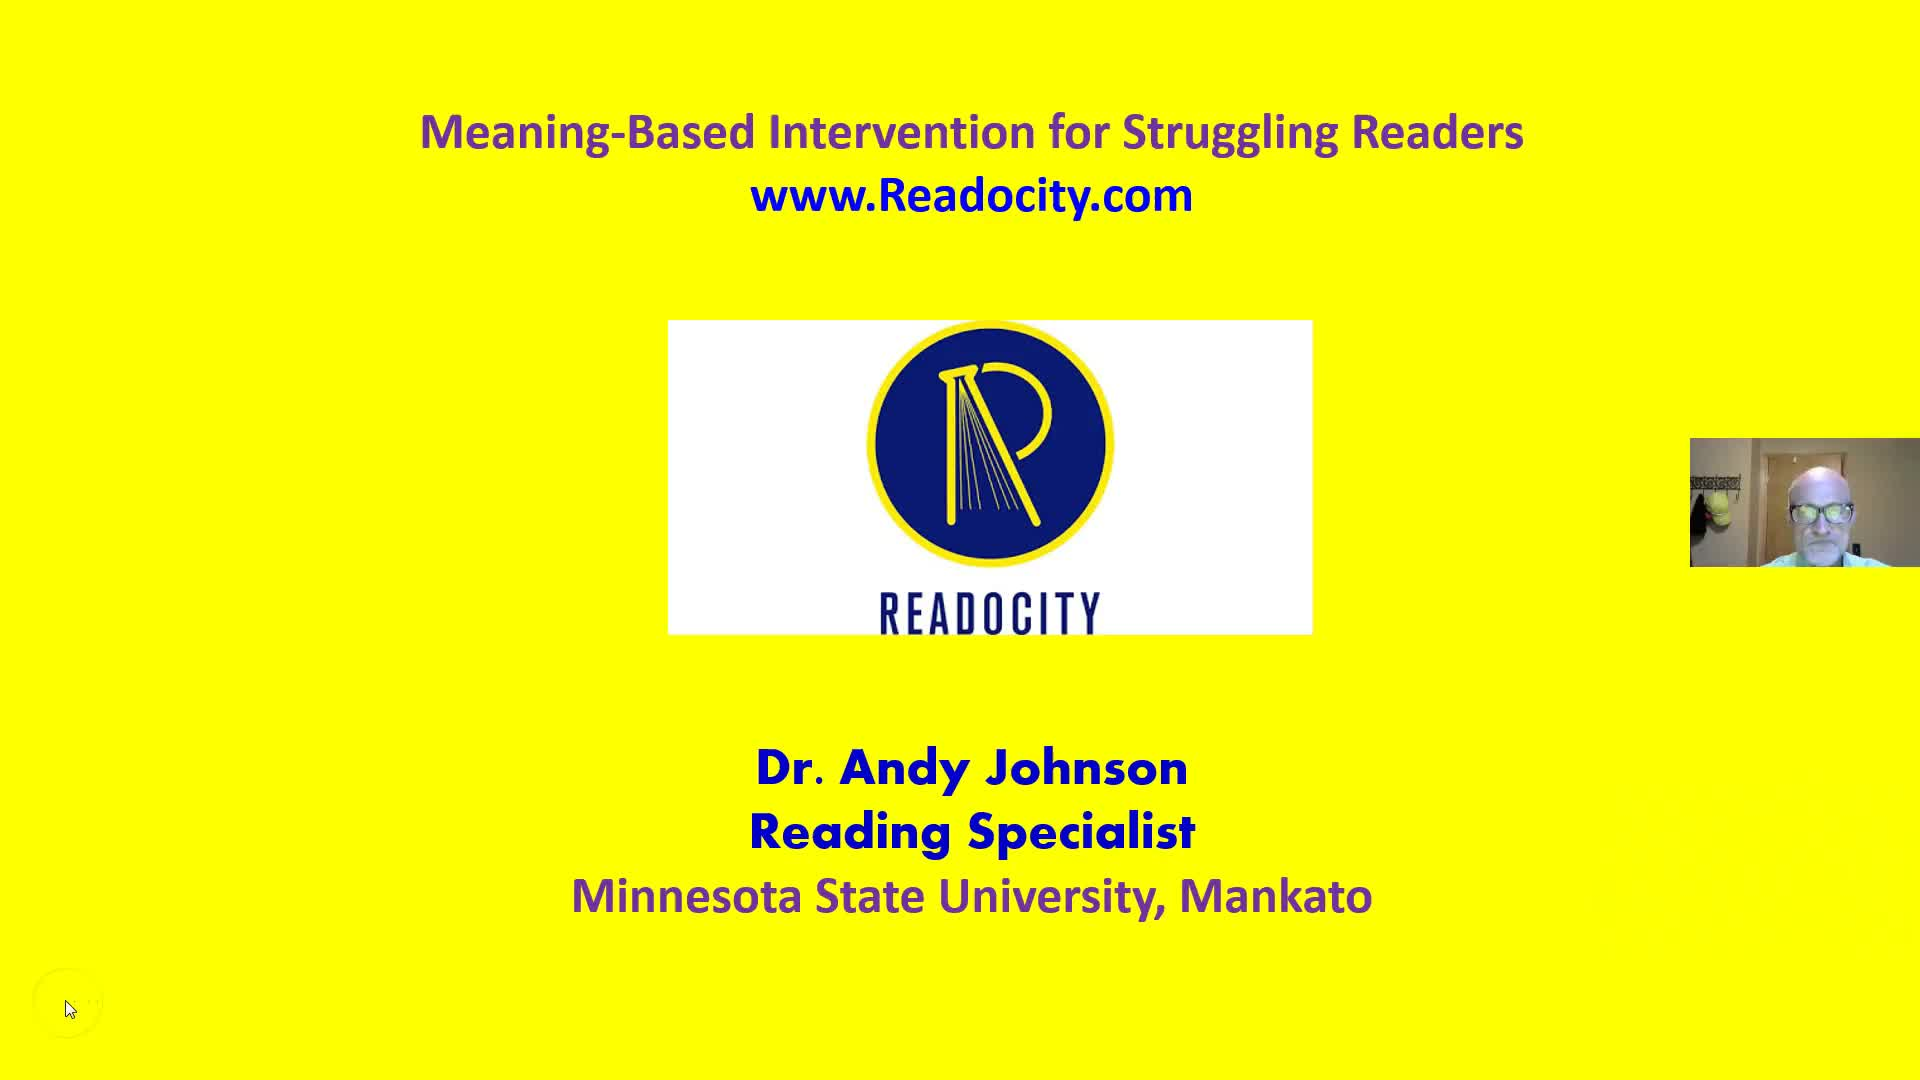 WHAT IS A MEANING-BASED INTERVENTION FOR READING?